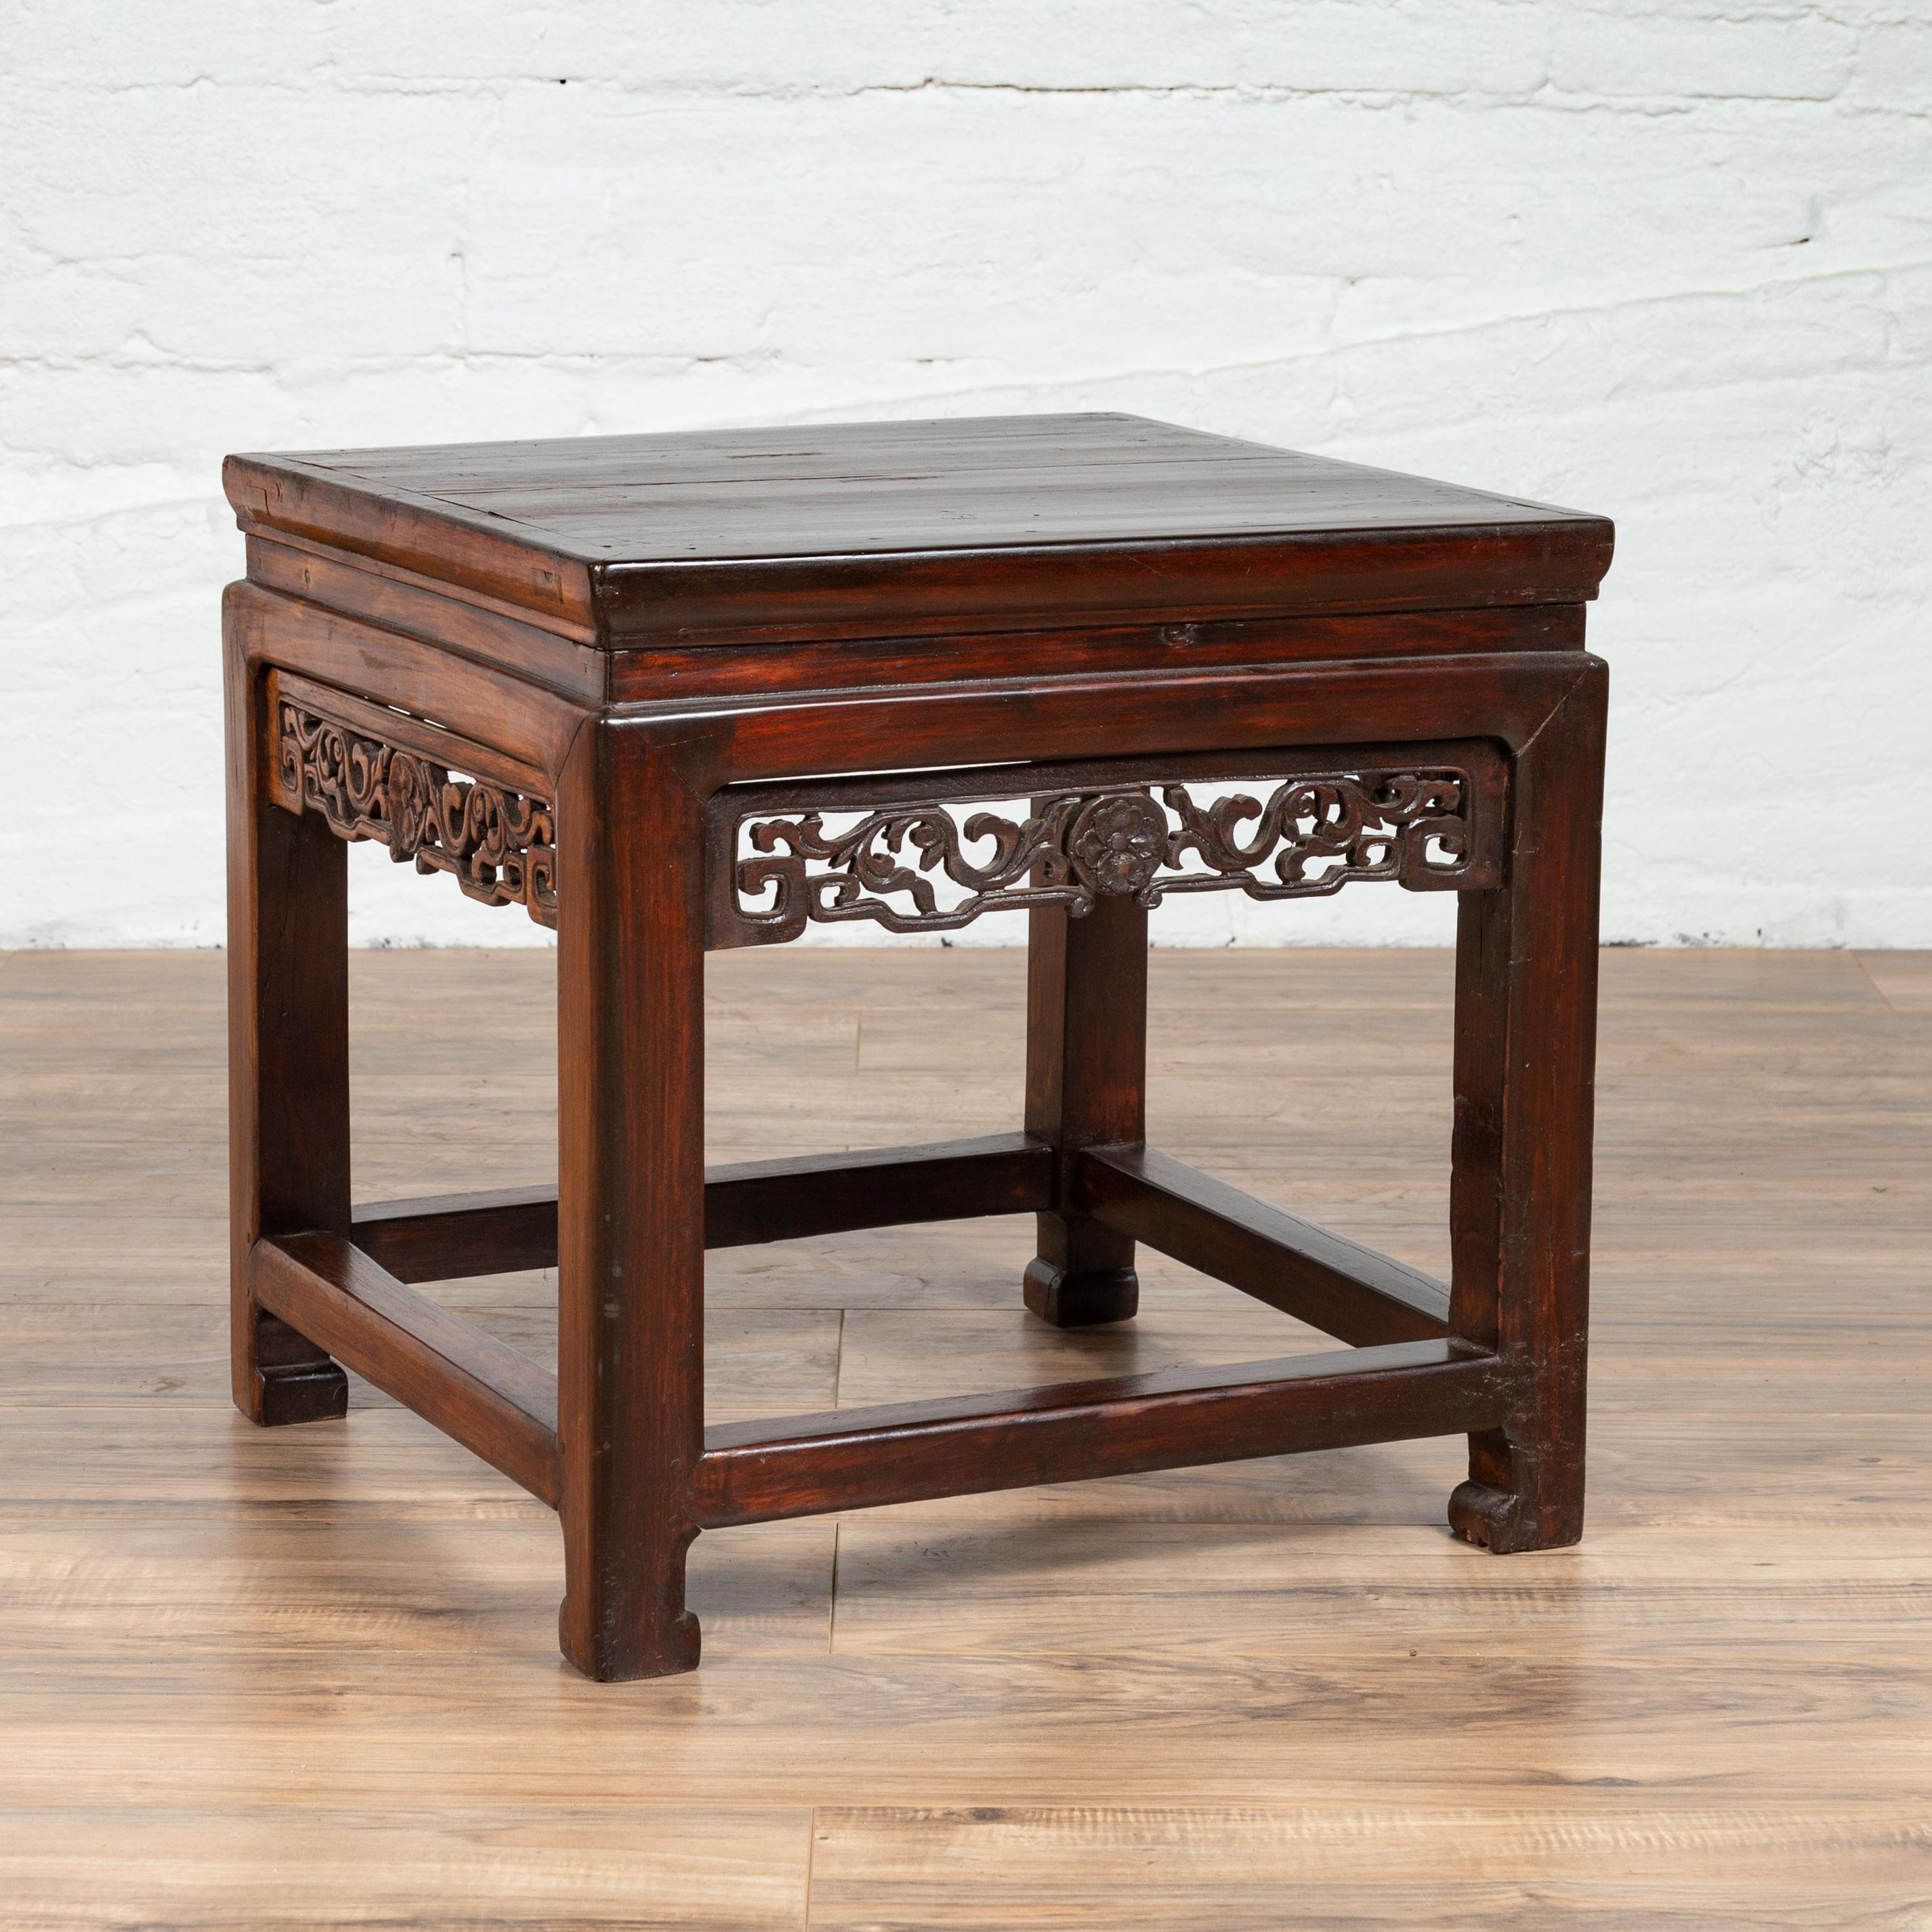 Chinese Vintage Side Table With Dark Wood Patina And Hand Carved Foliage Decor